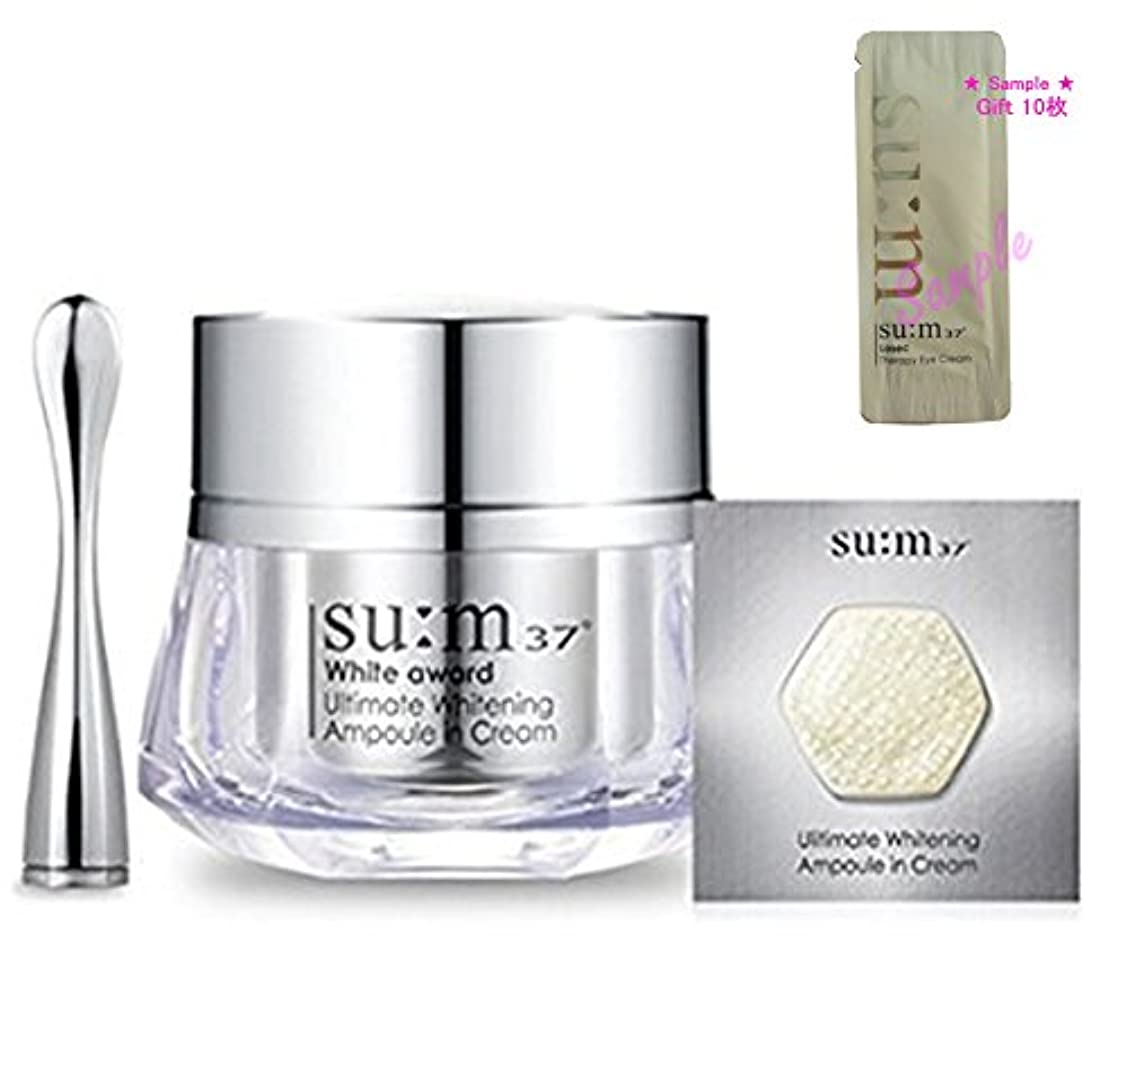 防水水を飲むストレージ[su:m37/スム37°] SUM37 WHITE AWARD ULTIMATE WHITENING AMPOULE IN CREAM(並行輸入品)